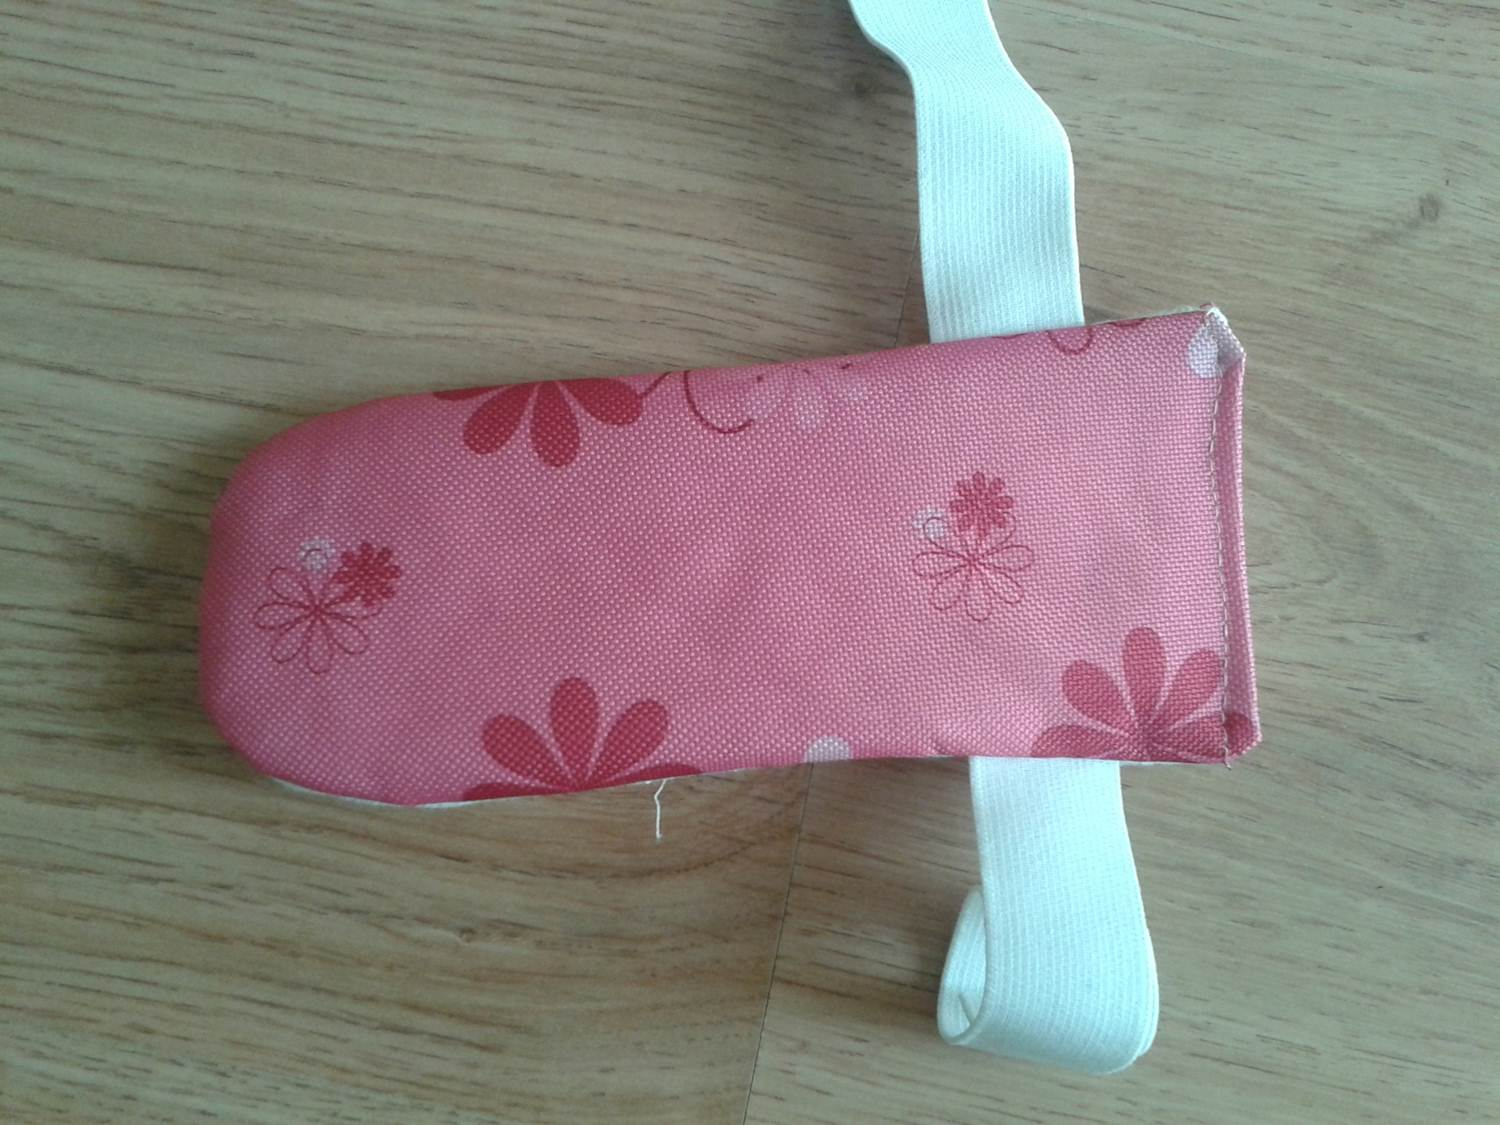 diy sports ipod armband pouch with pattern keeping it real. Black Bedroom Furniture Sets. Home Design Ideas